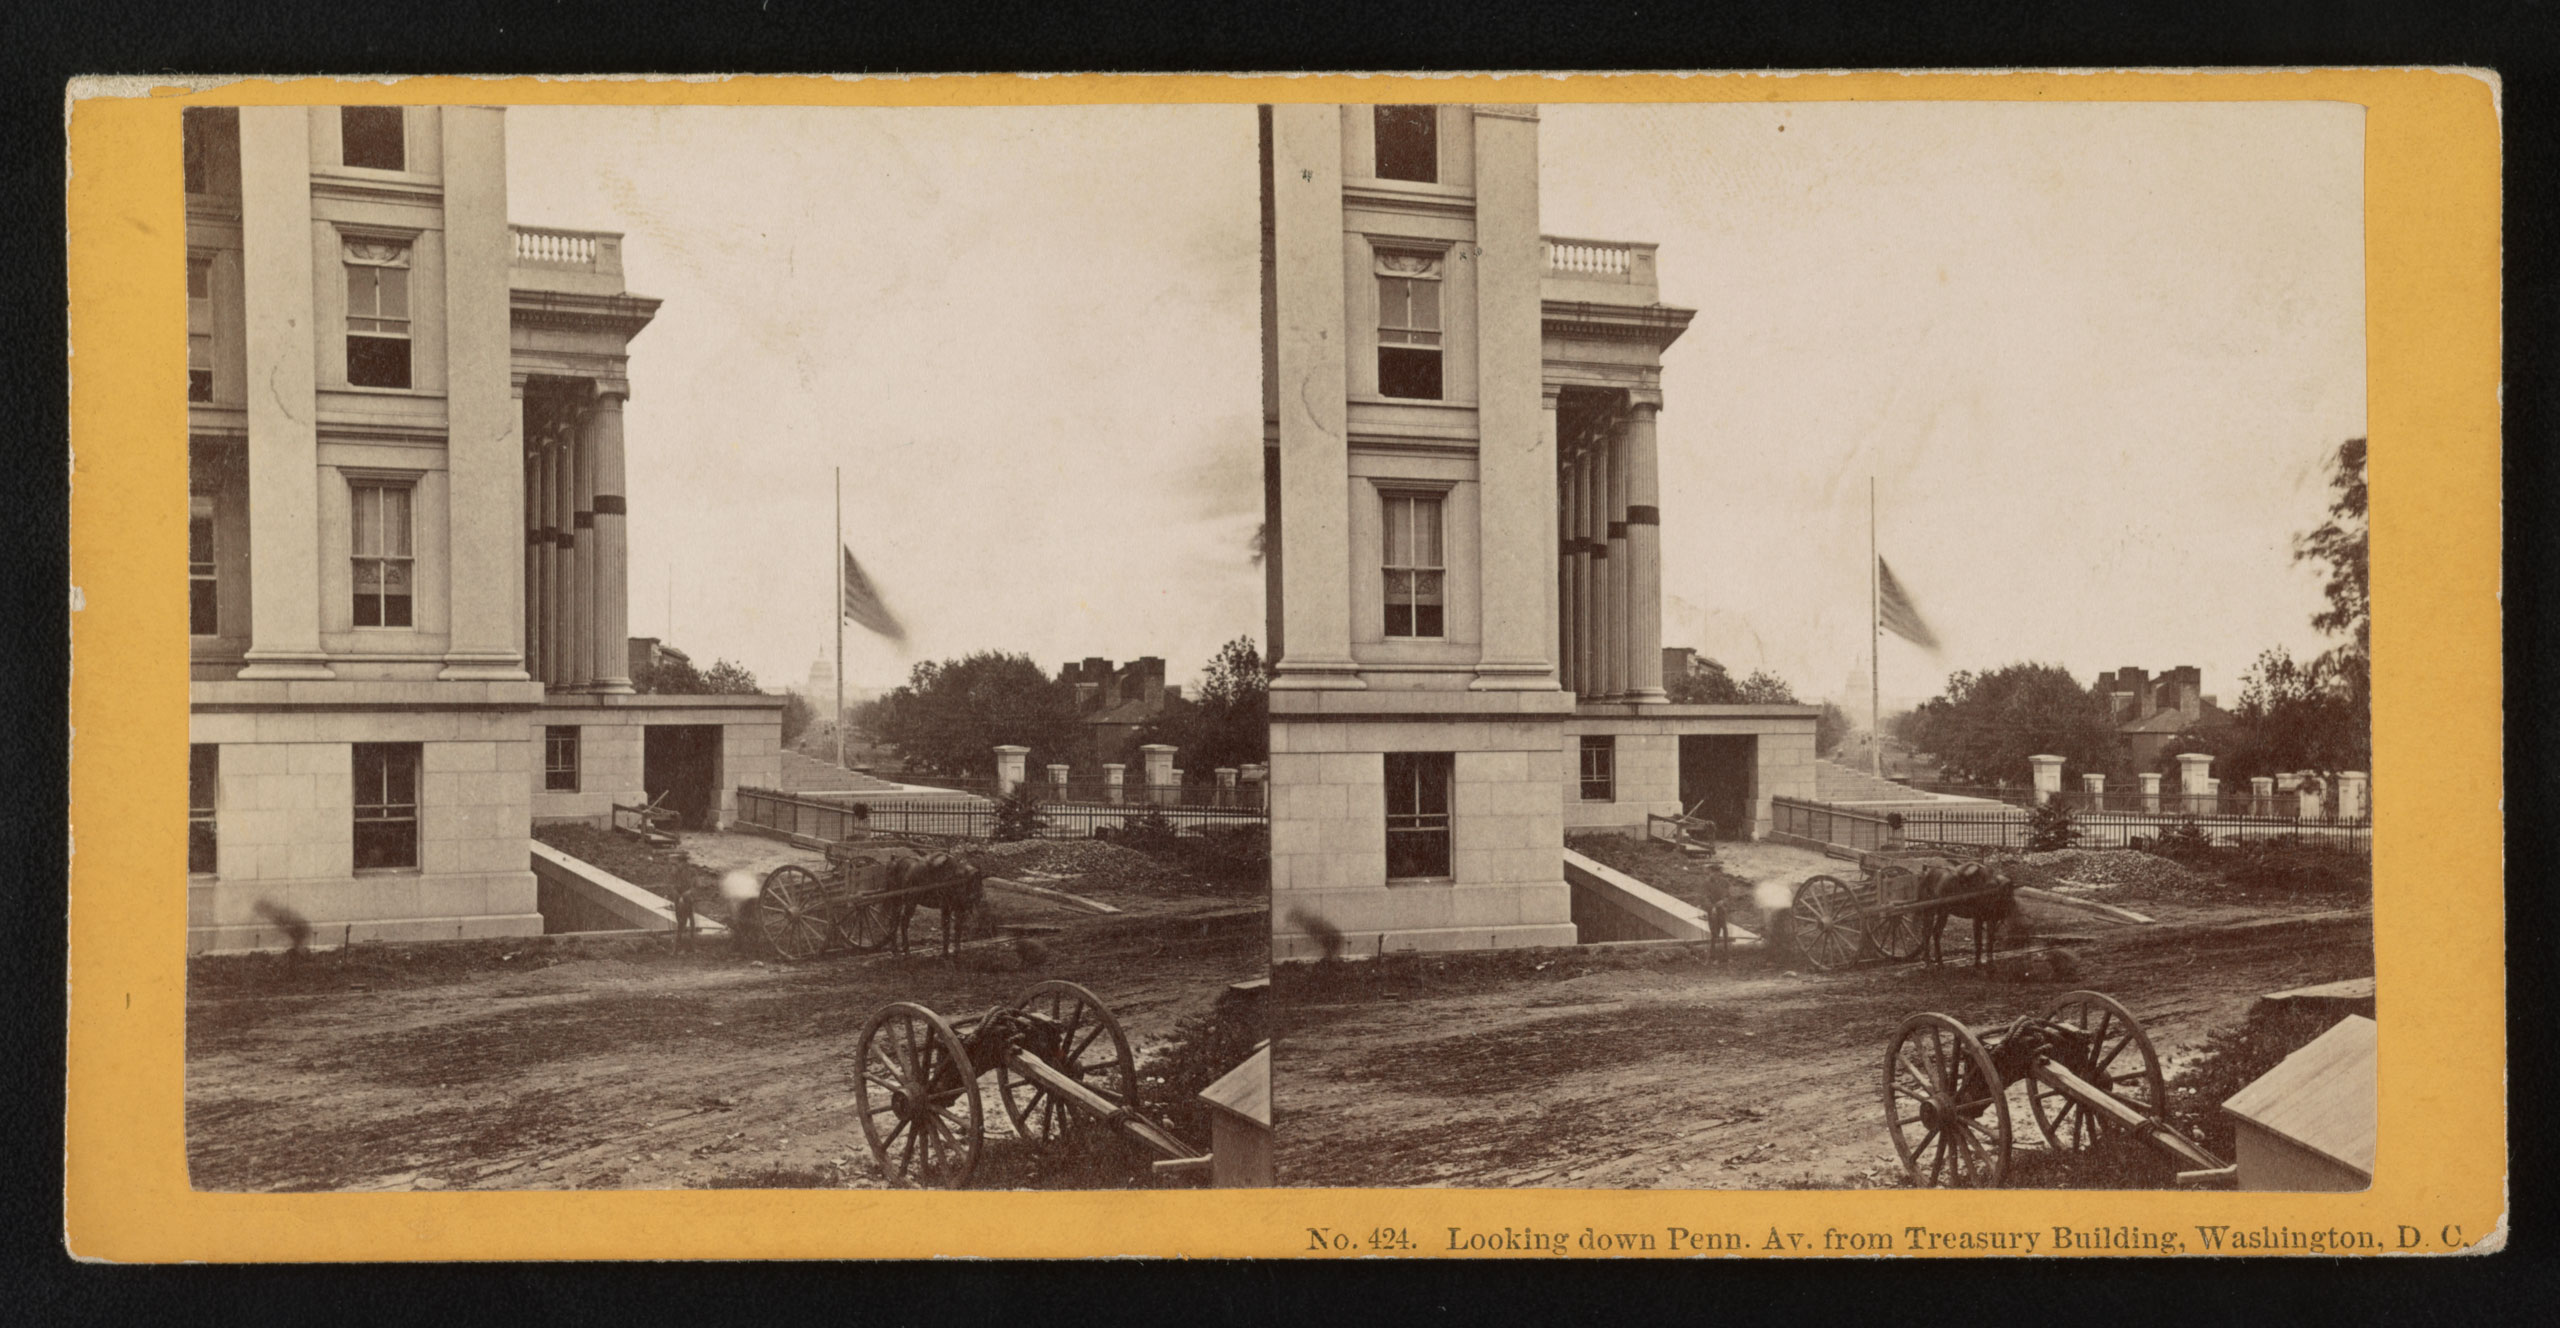 A view of Pennsylvania Avenue in Washington D.C. after the death of Abraham Lincoln showing mourning bands draped on columns, and a flag at half staff. A caisson is parked in the foreground, 1865.